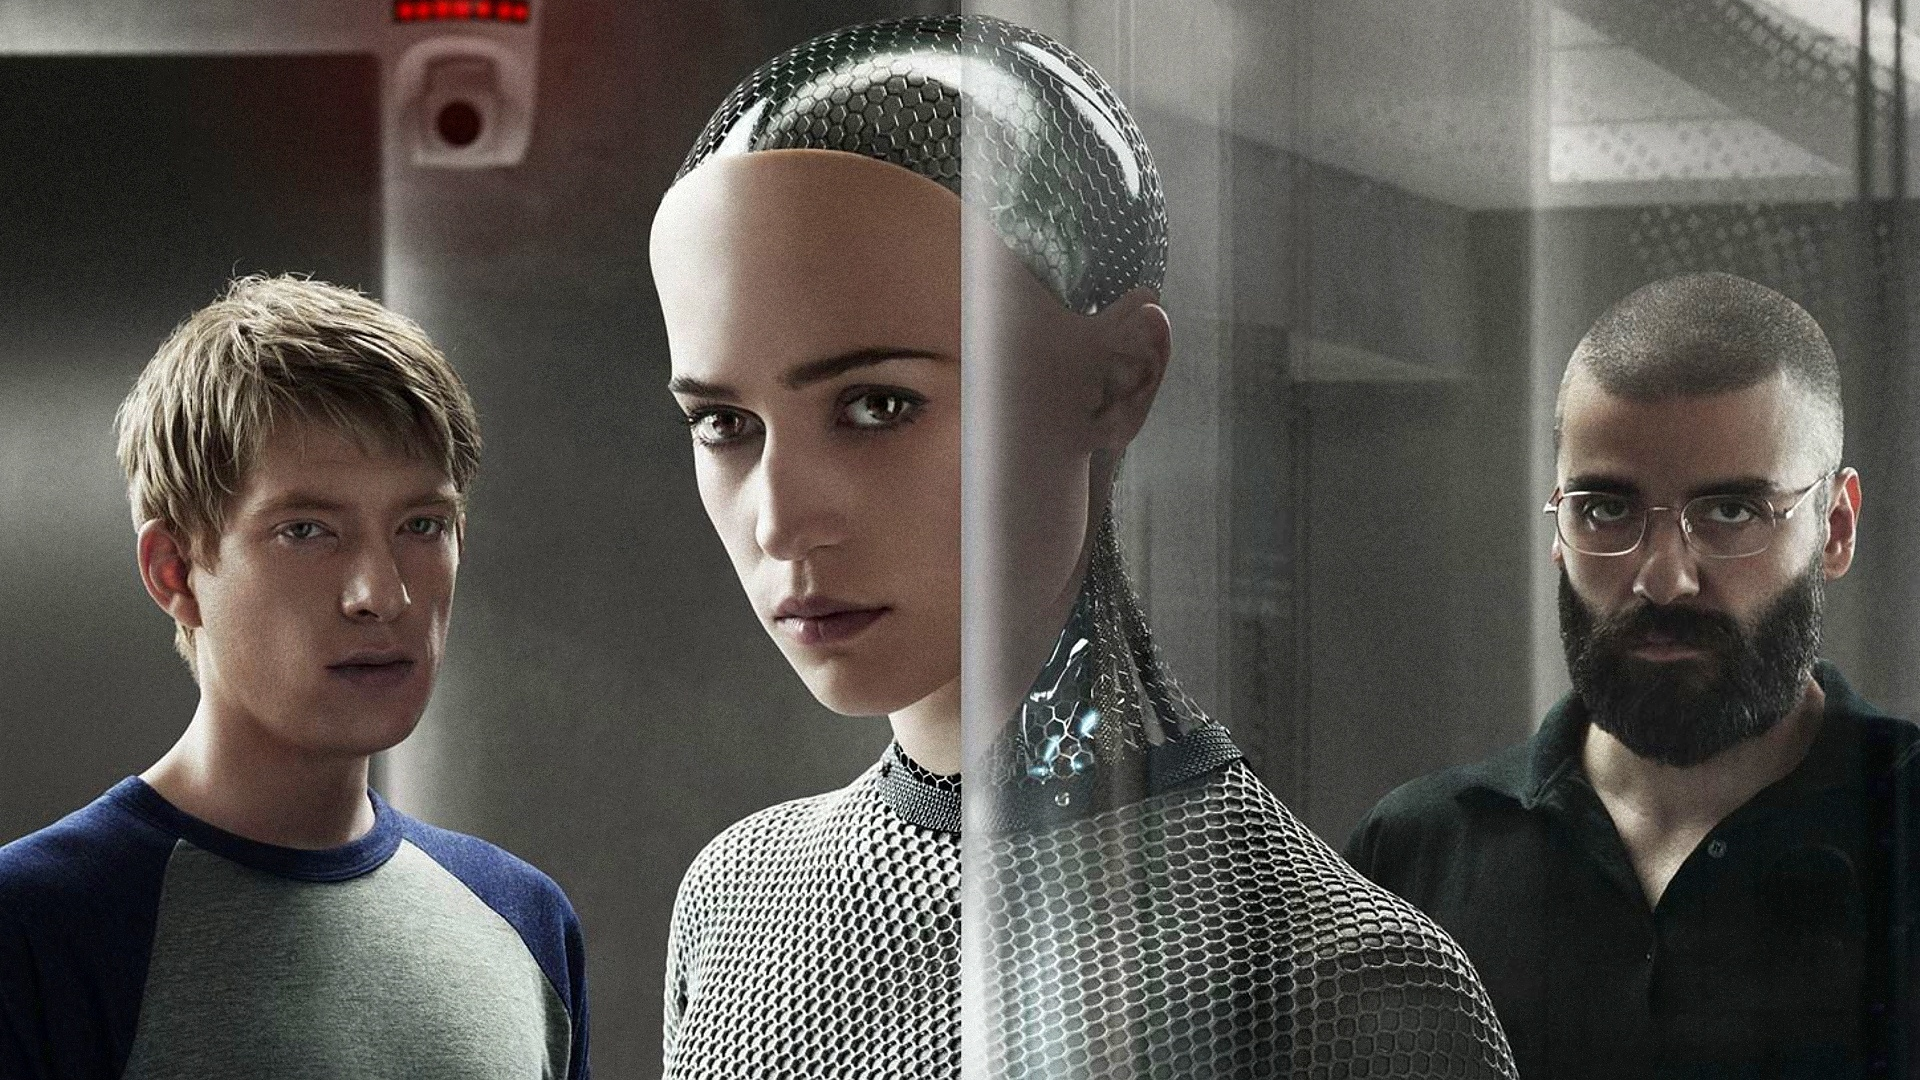 Ex Machina Review: A Twisted tale of A.I. and the Human Psyche